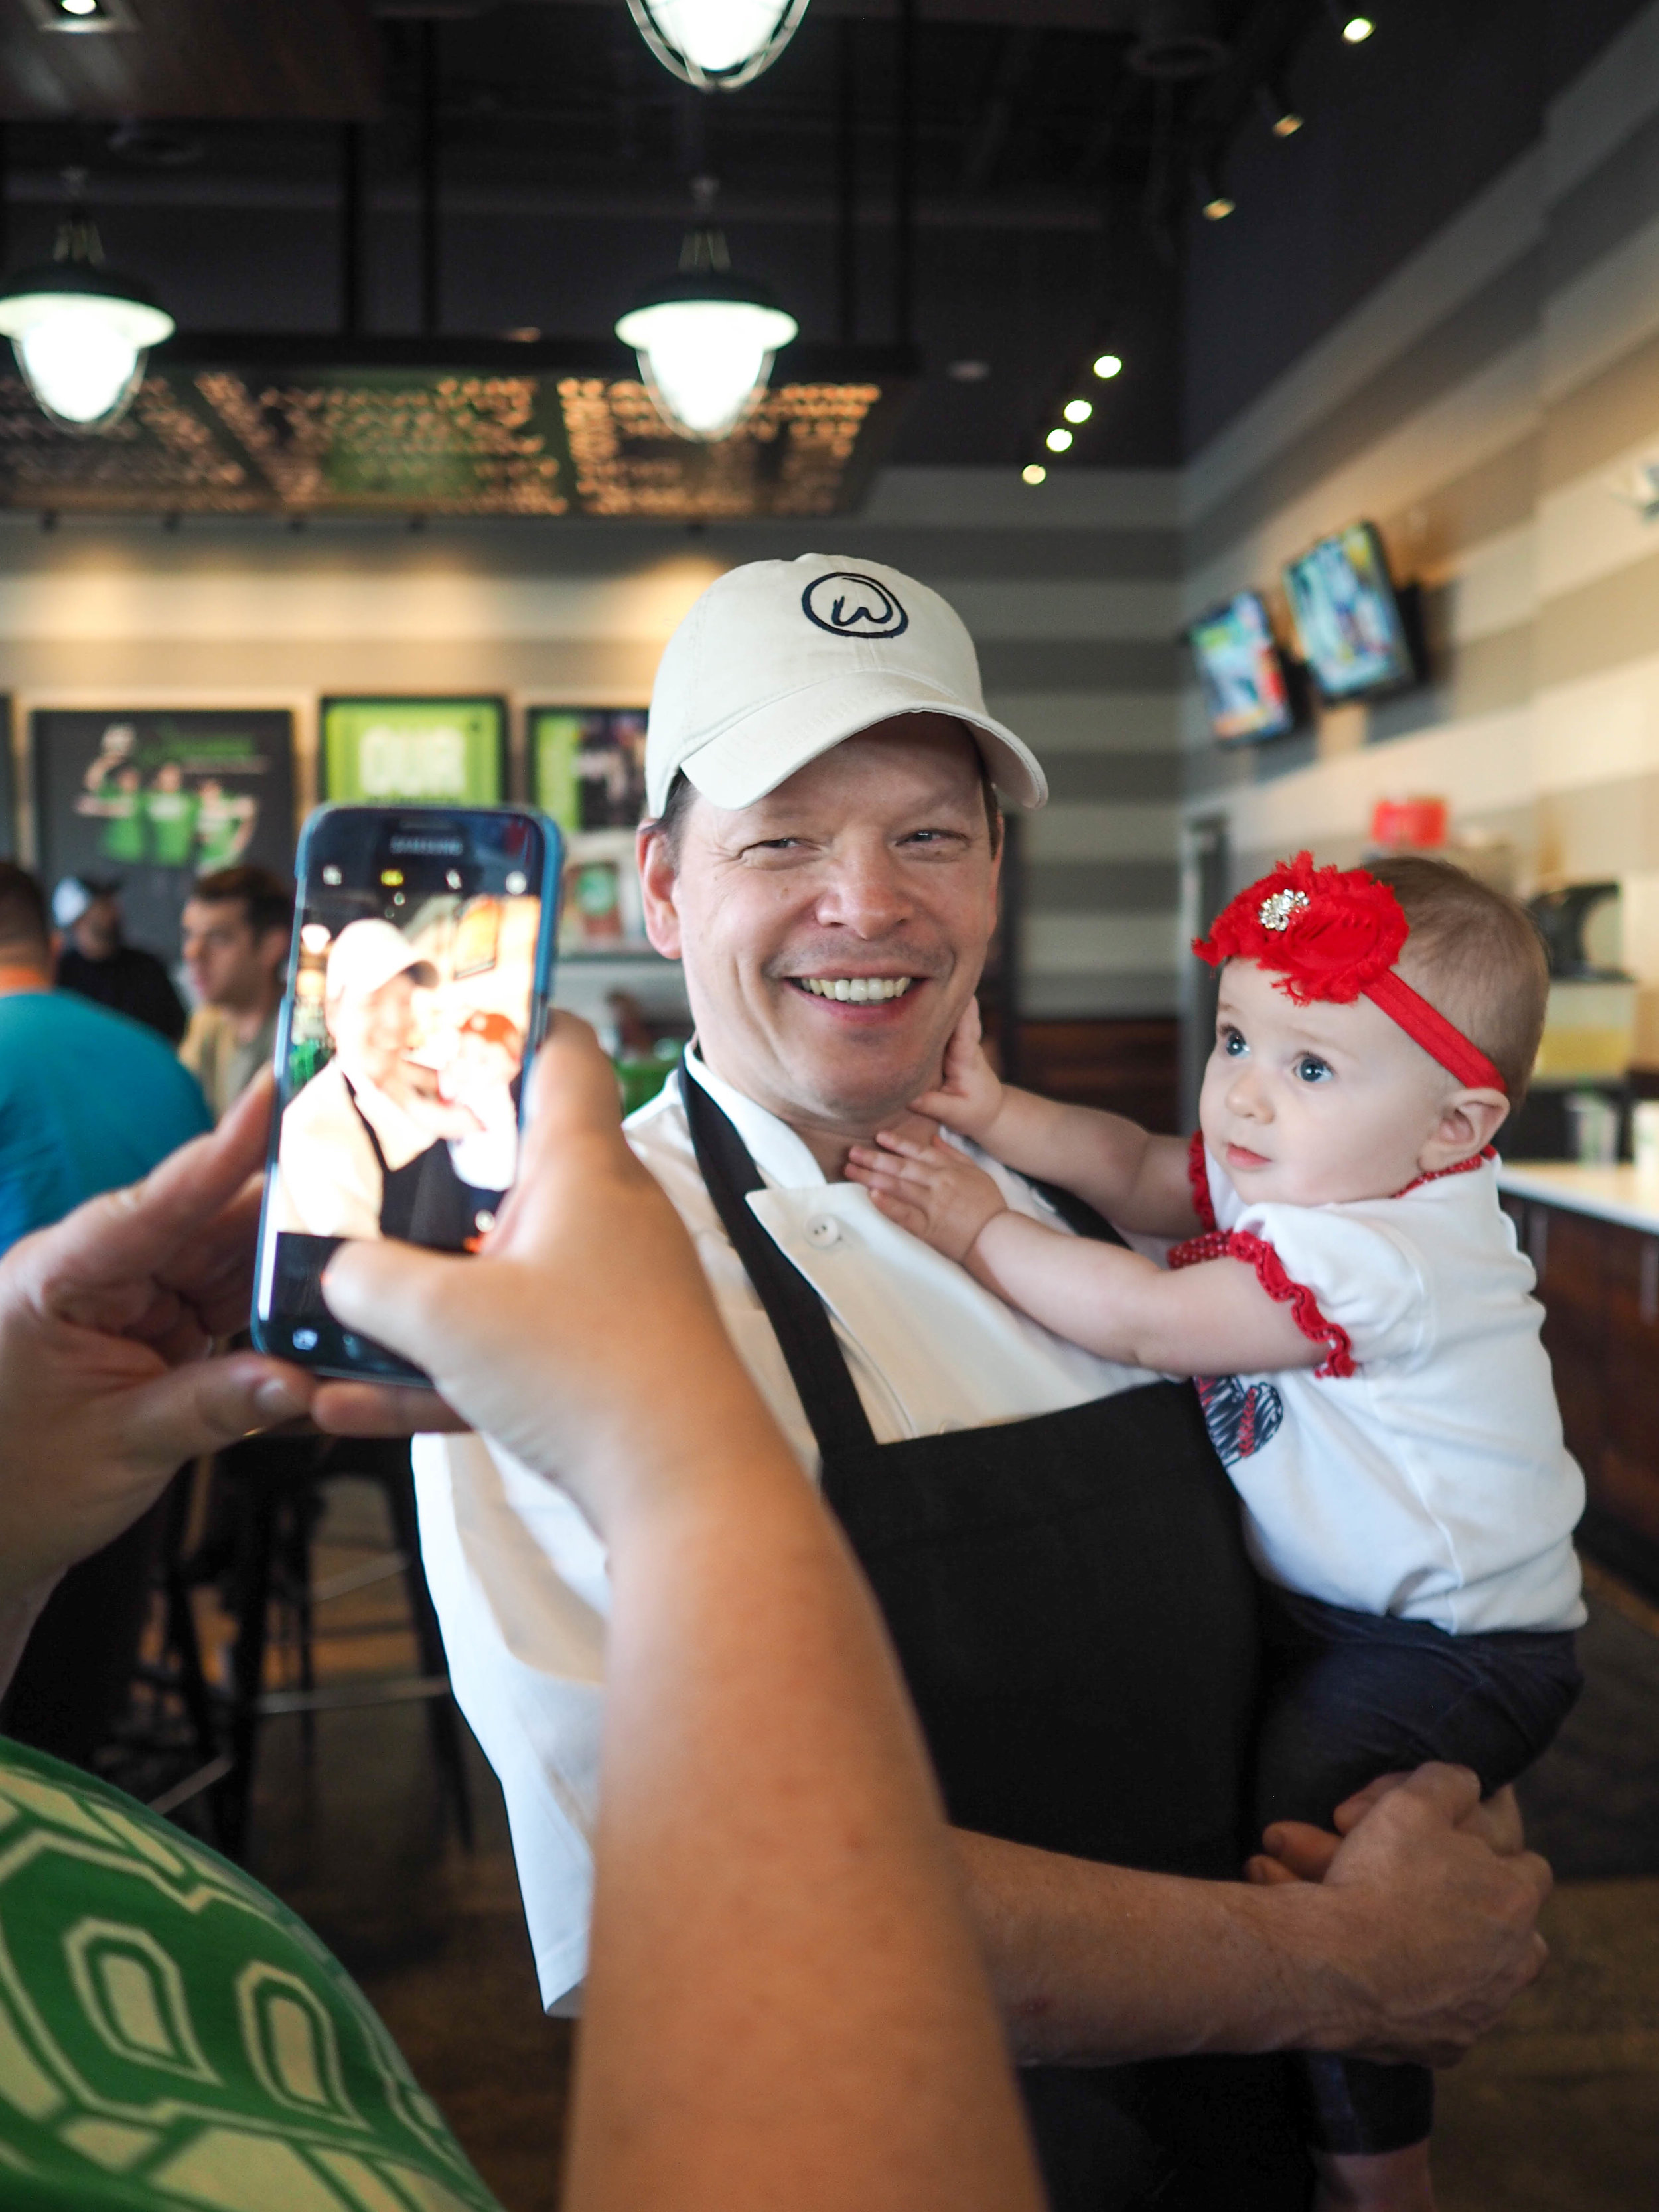 Executive Chef Paul Wahlburg poses with baby